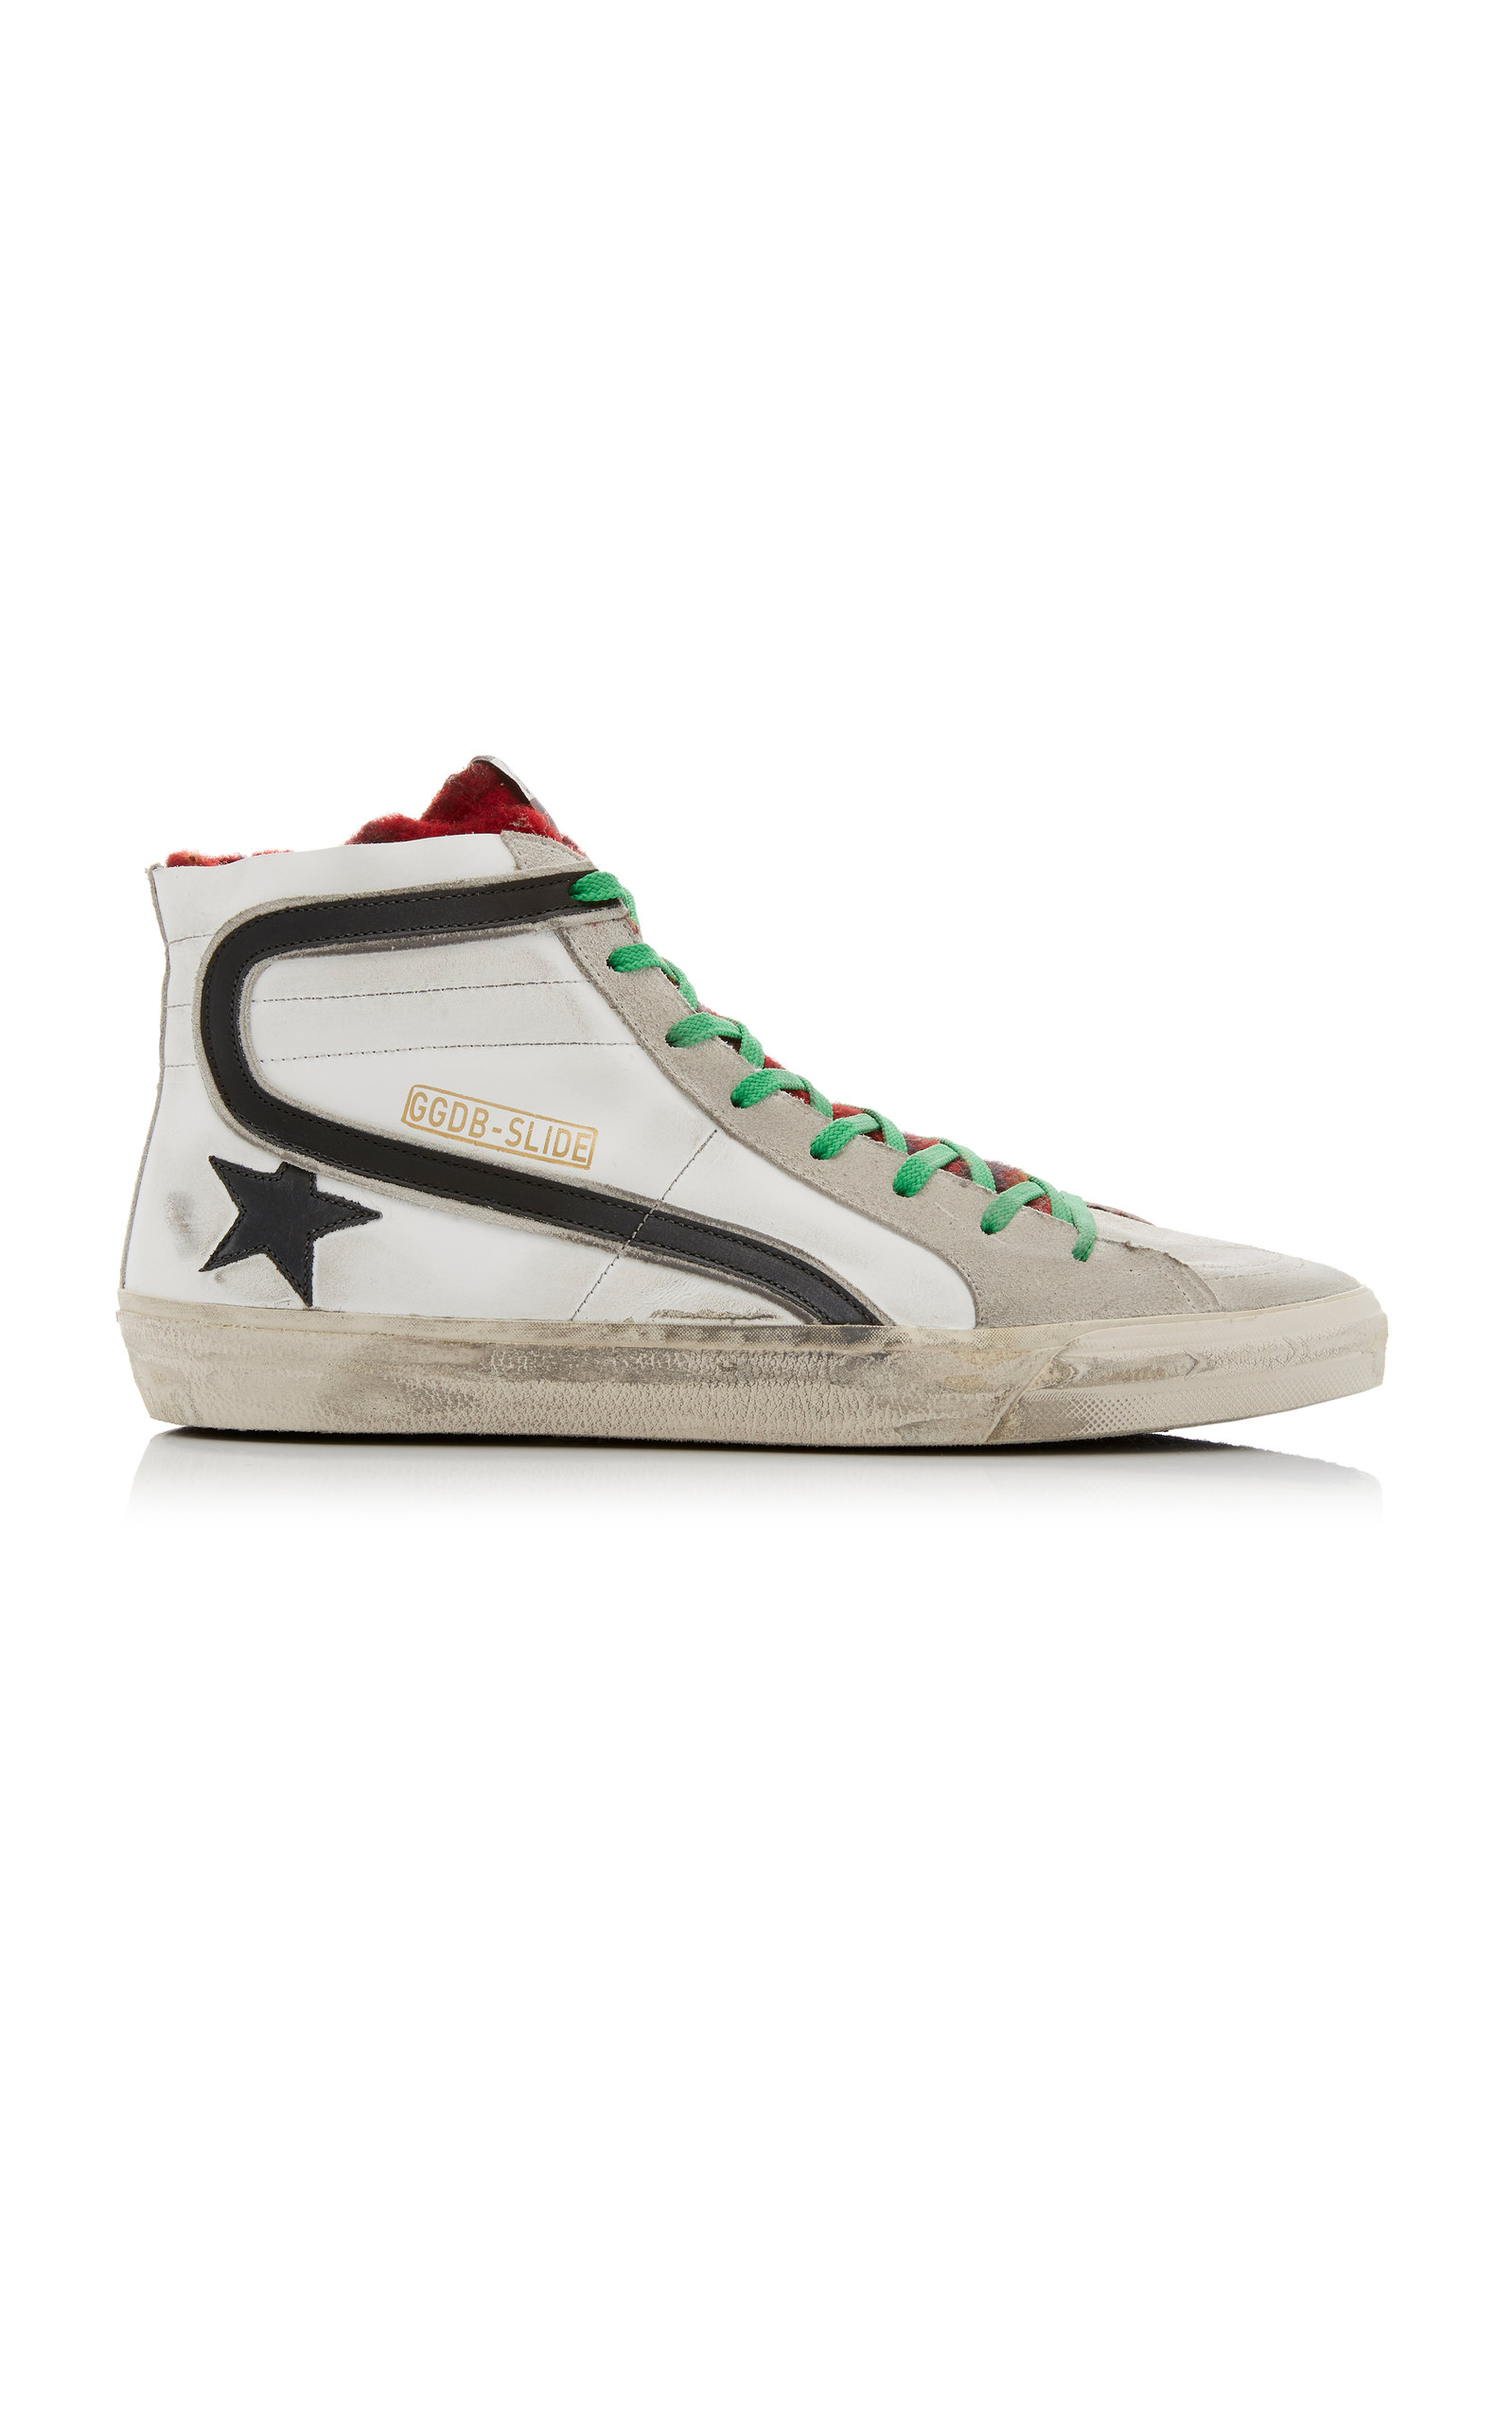 Golden Goose Sneakers High-Top Multi-Color Leather Sneakers